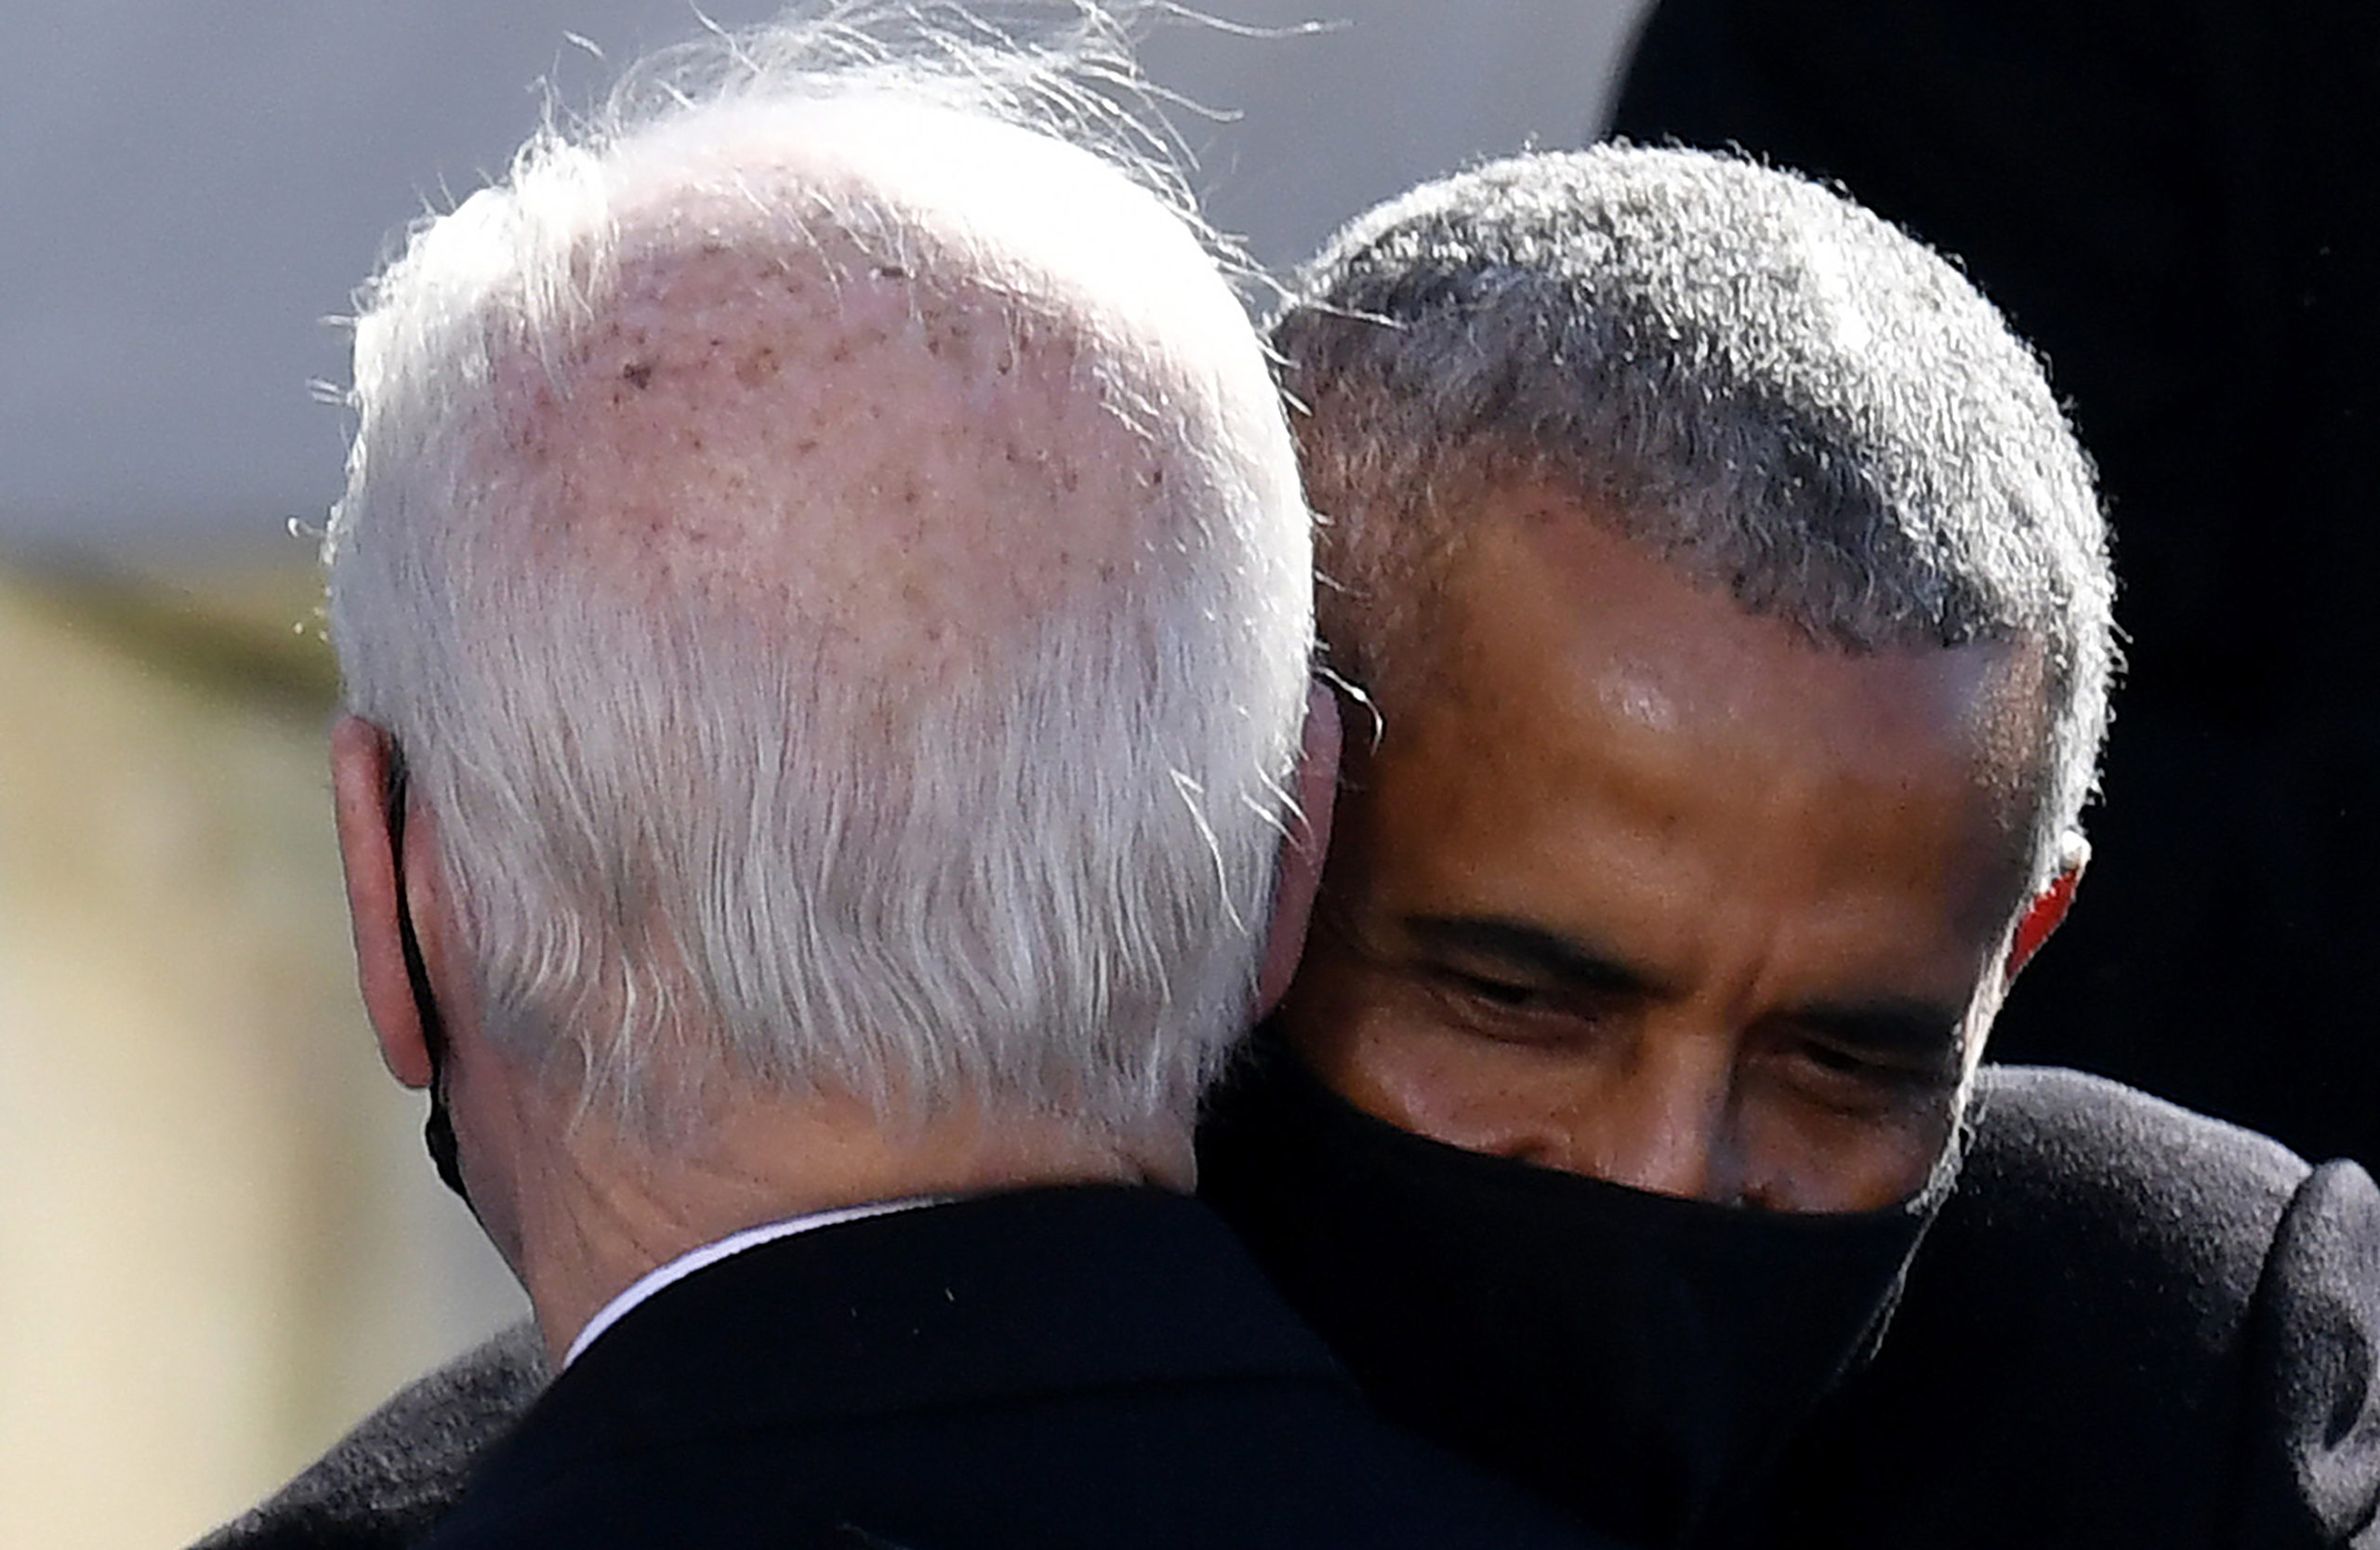 Former US President Barack Obama hugs US president Joe Biden during his inauguration as the 46th US President on January 20, 2021, at the US Capitol in Washington, DC. (Photo by OLIVIER DOULIERY/AFP via Getty Images)